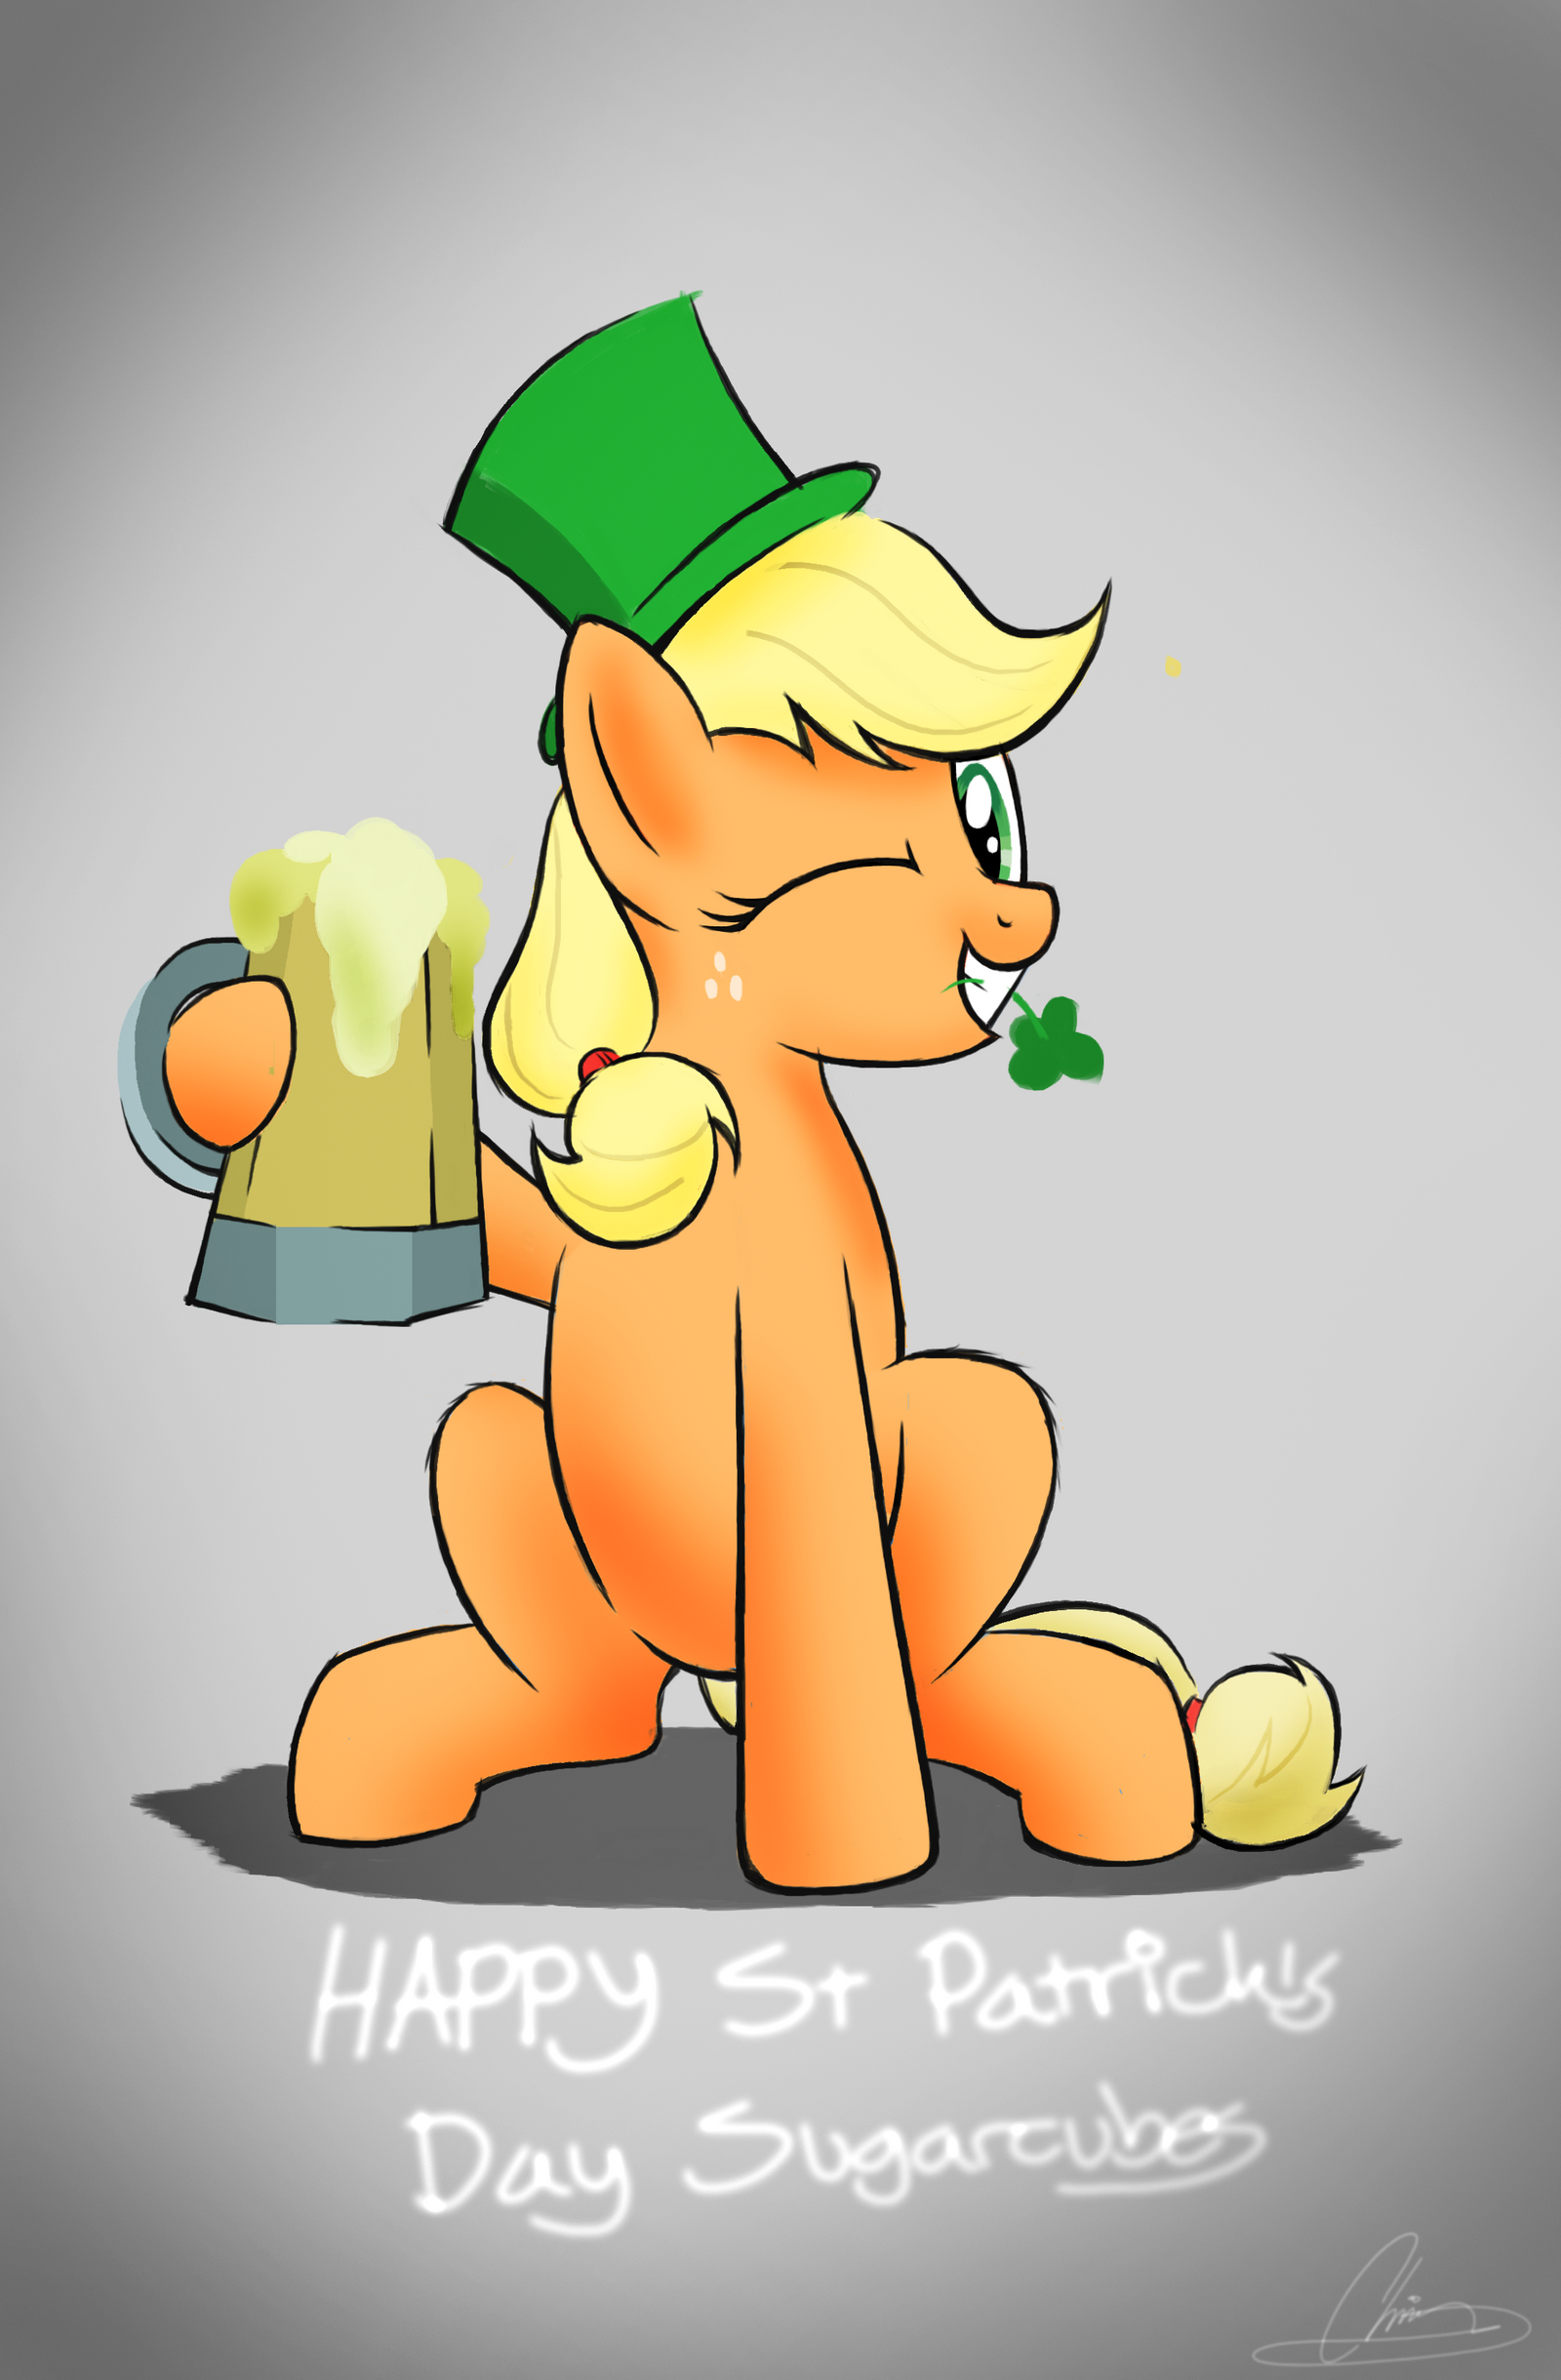 St. Patrick's Day by OinkTweetStudios